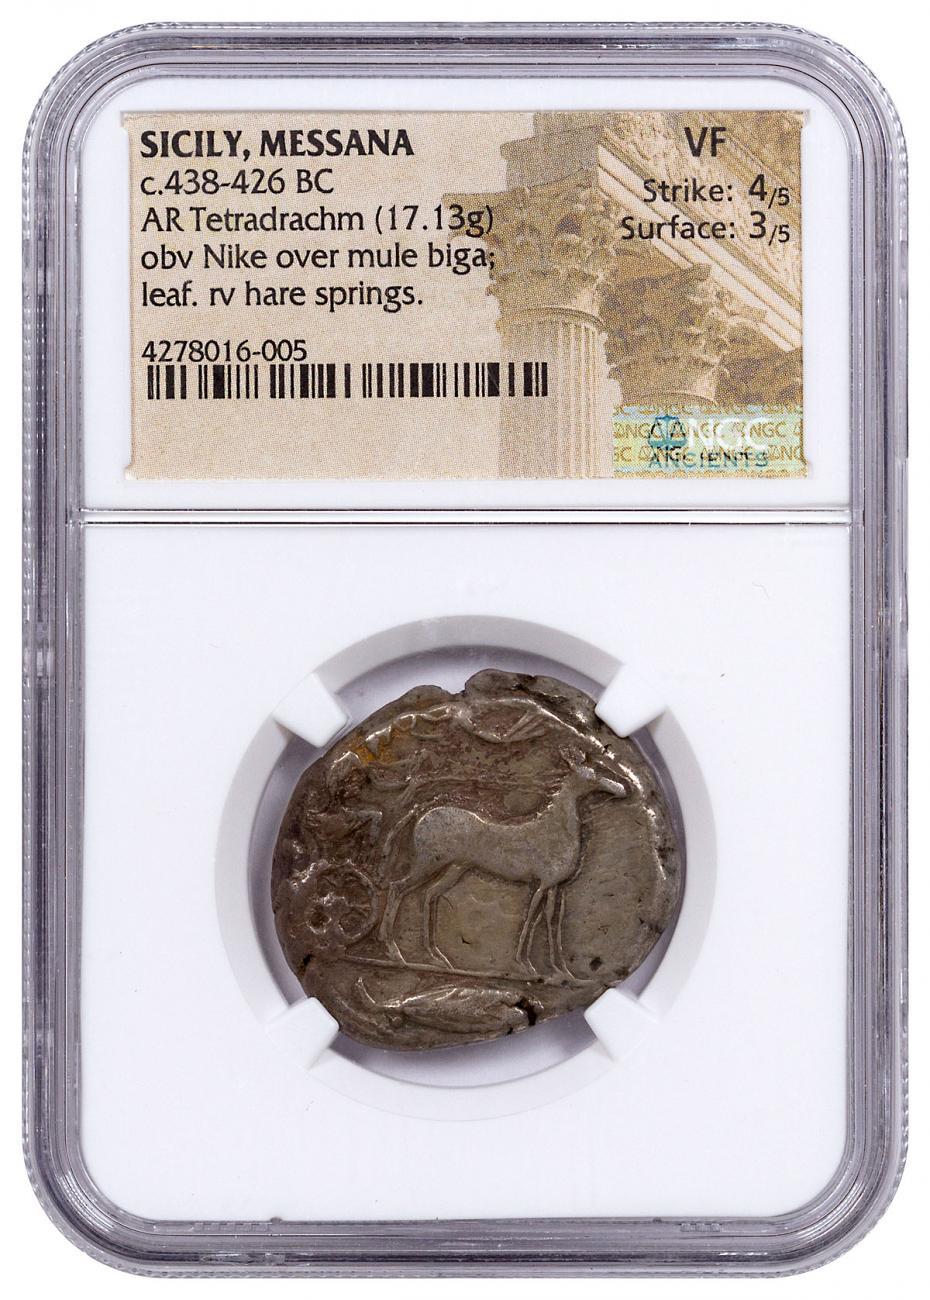 Sicily, Messana Silver Tetradrachm (c.438-426 BC) - NGC VF (Strike: 4/5, Surface: 3/5)